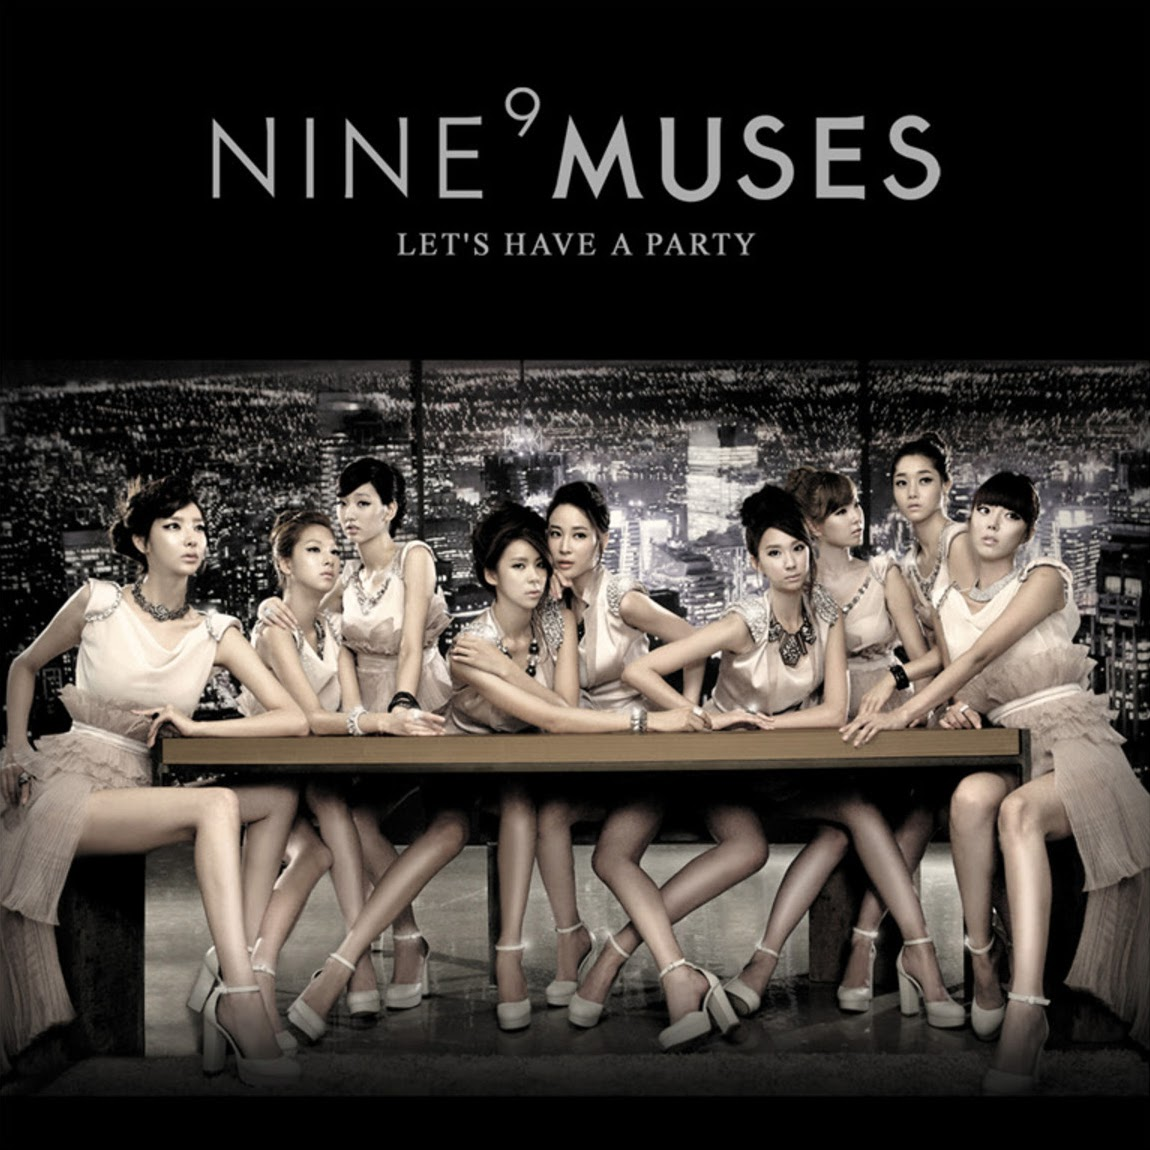 9muses lots of legs